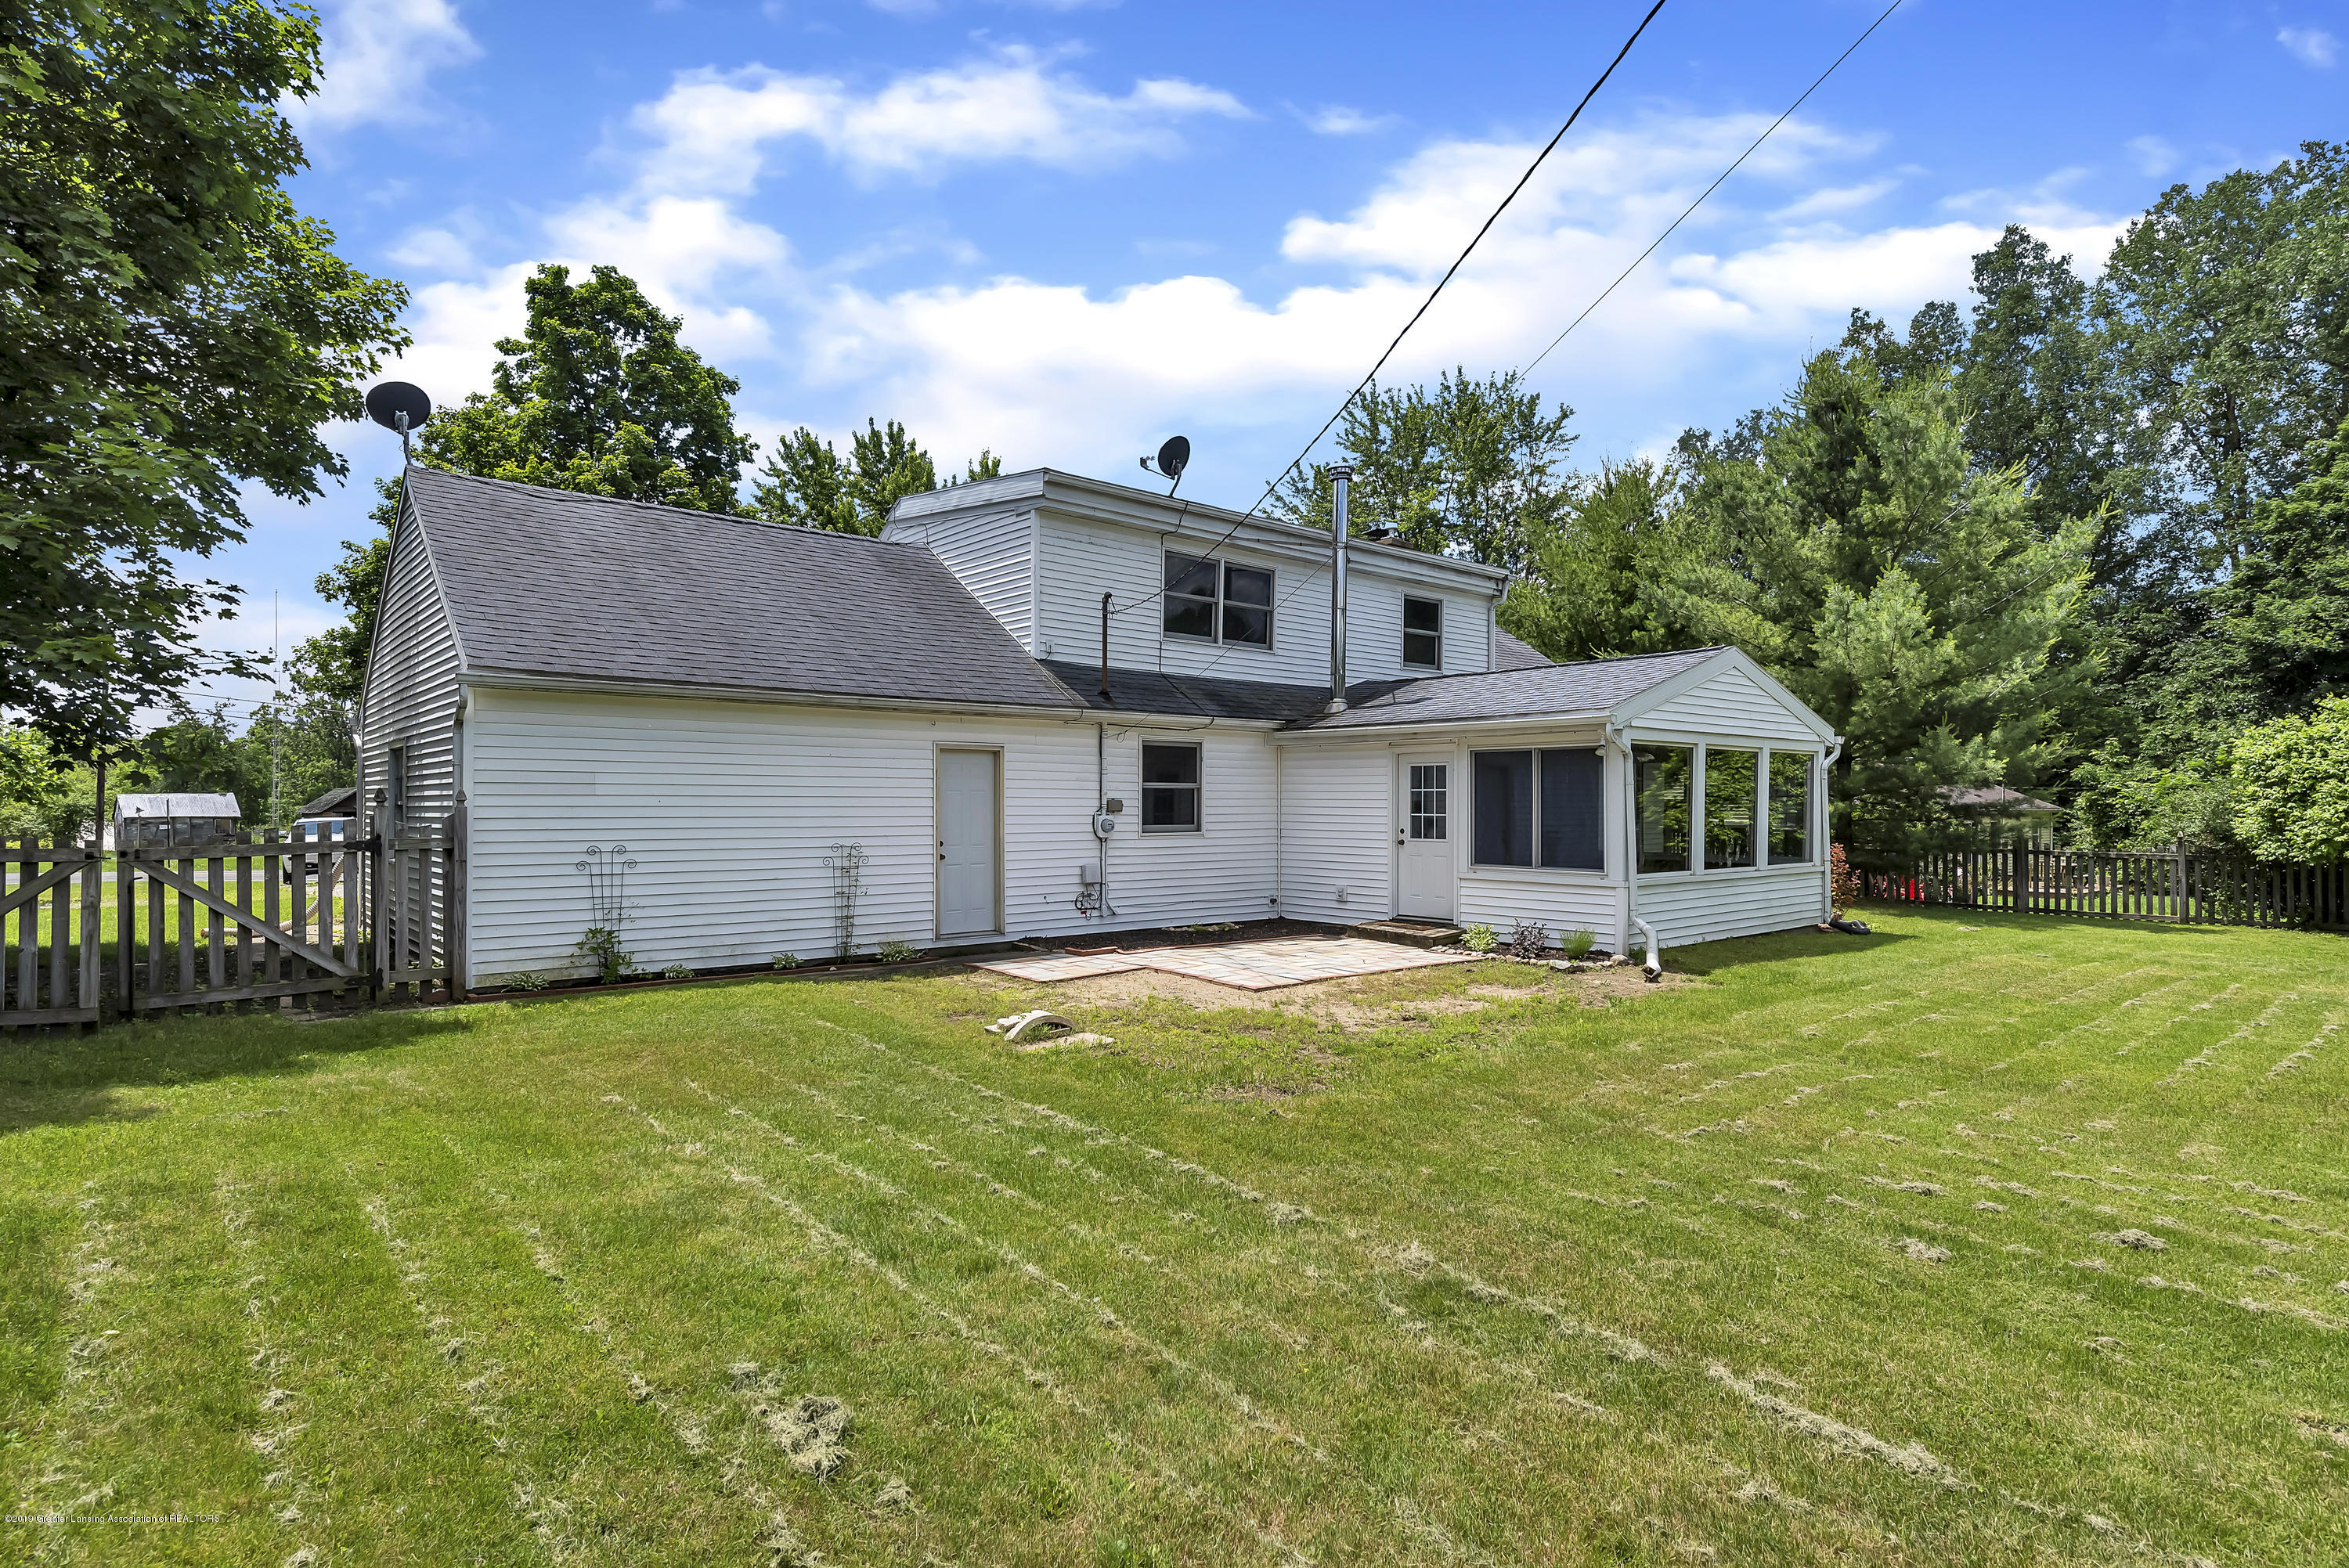 699 Sherwood Rd - 699-E-Sherwood-Rd-Williamston-windowstil - 34